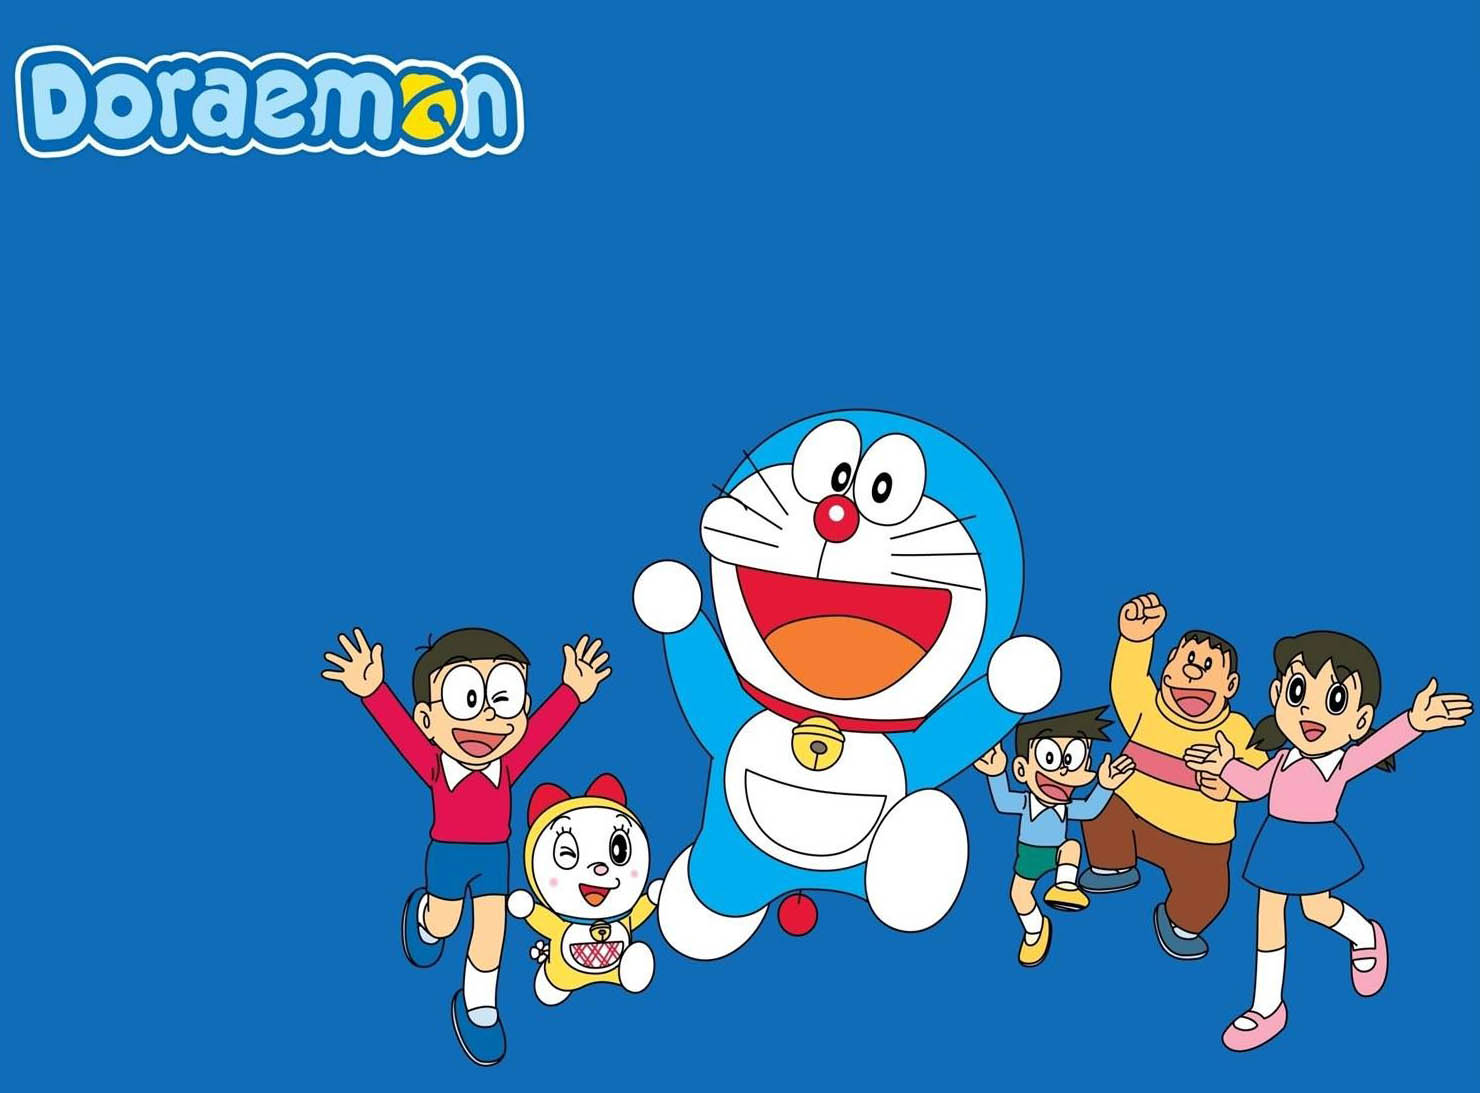 Free Doraemon Anime Wallpaper HD Wallpaper